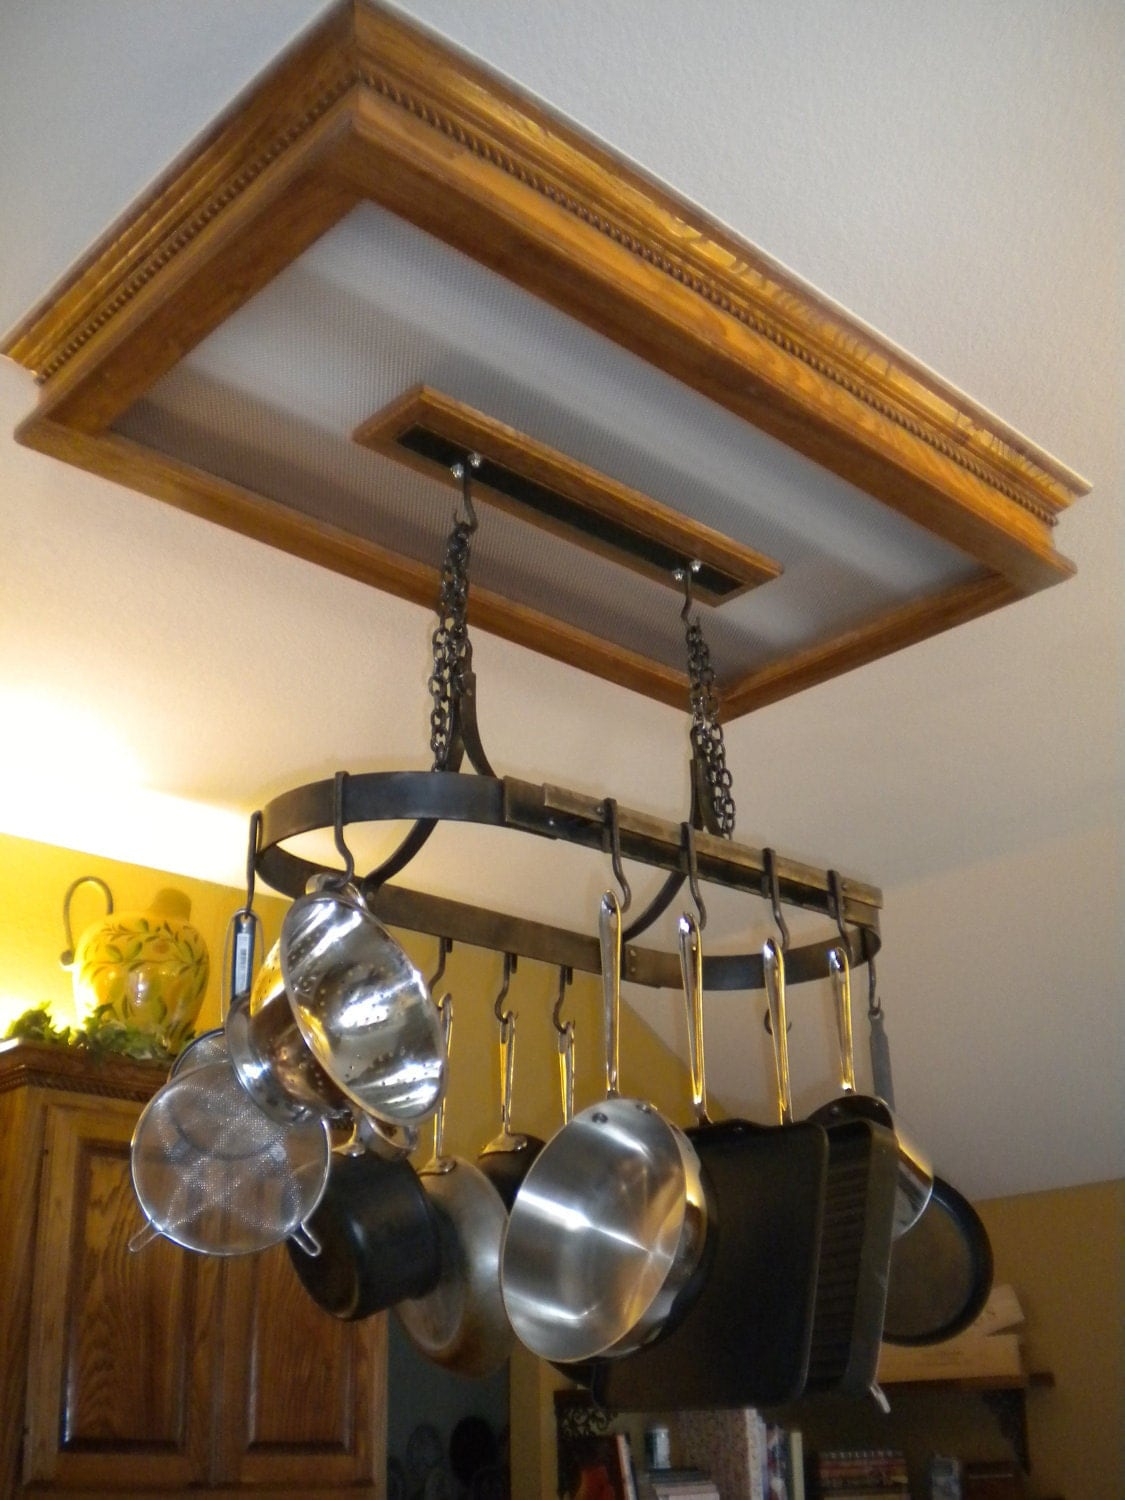 Hanging Pot Rack With 10 Hooks Hand Forged by a Blacksmith